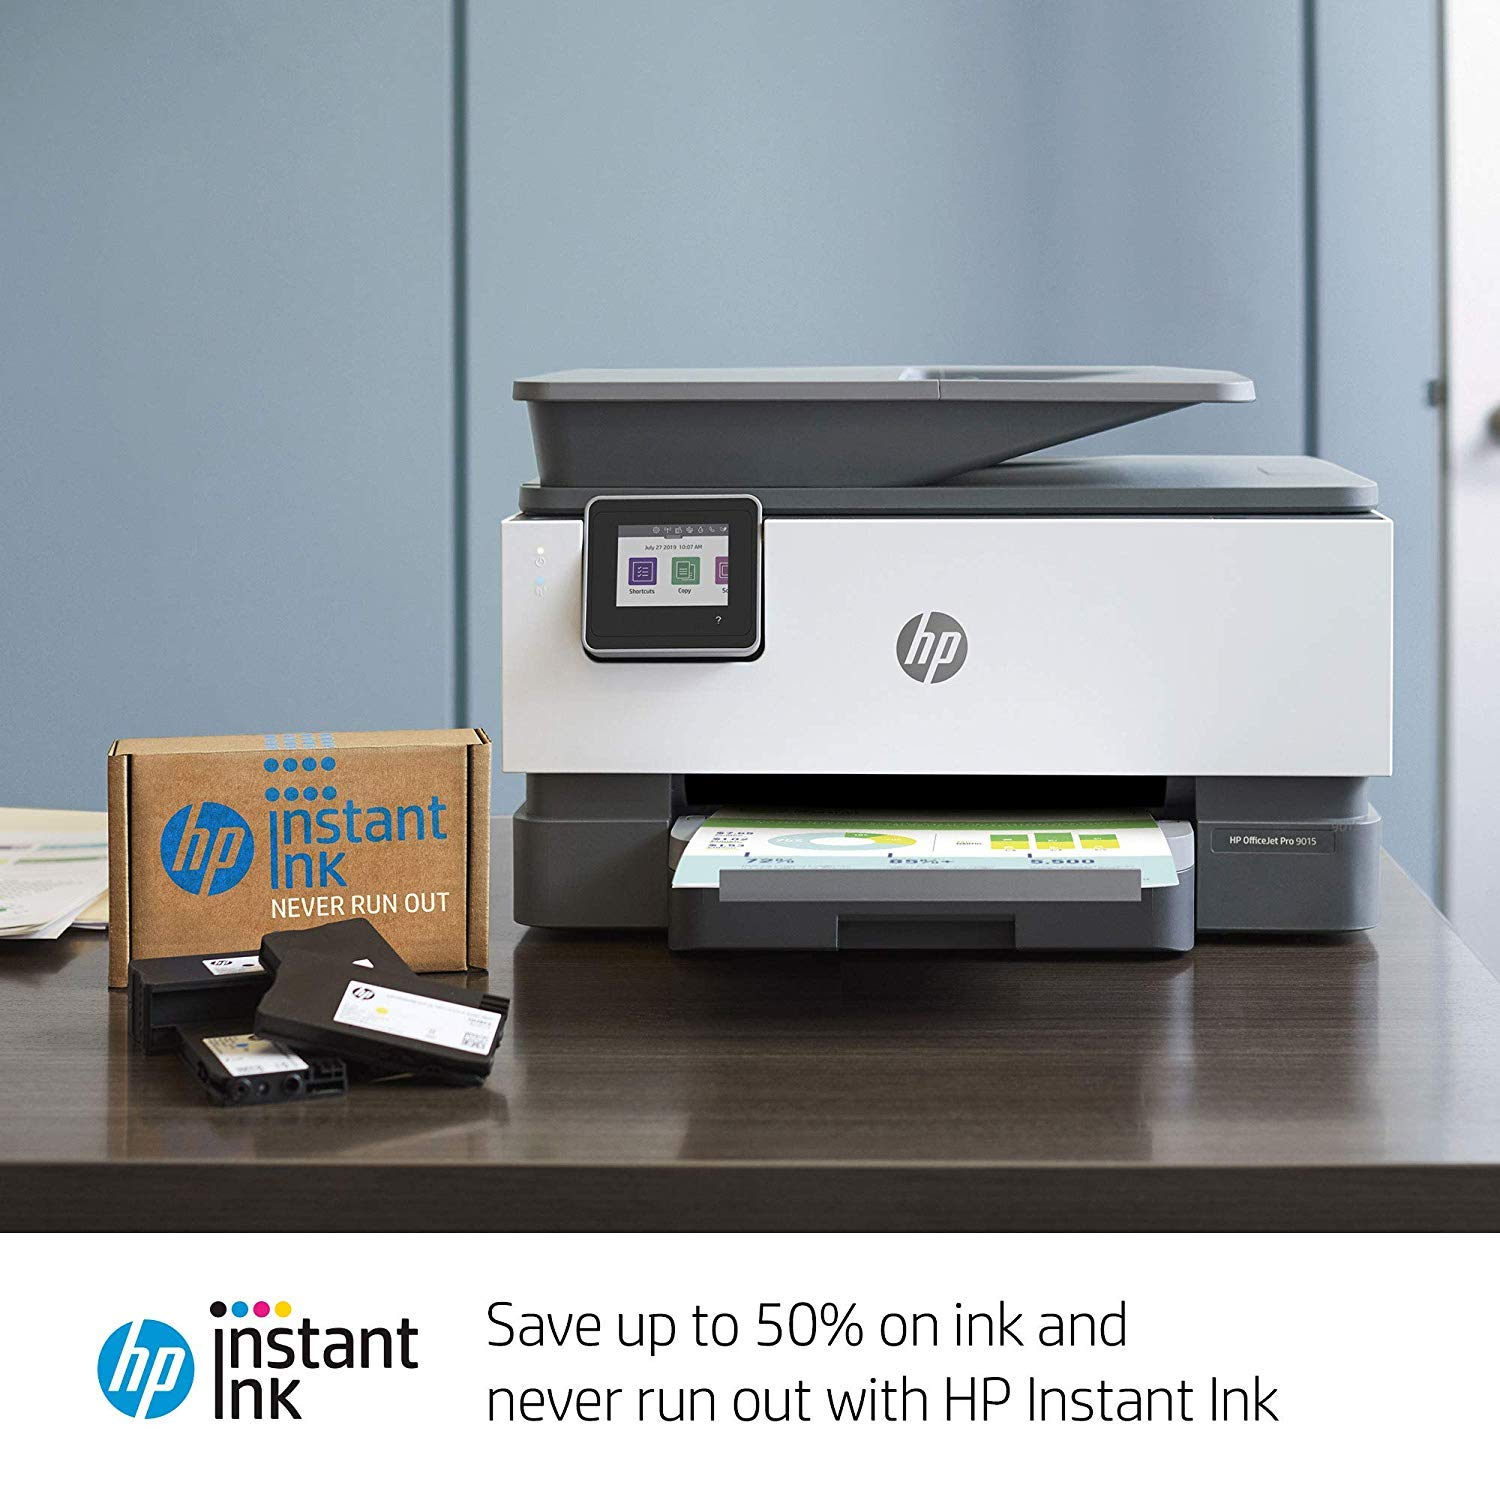 HP OfficeJet Pro 9015 All-in-One Wireless Printer, with Smart Tasks for Smart Office Productivity & Never Run Out of Ink with HP Instant Ink (1KR42A) by HP (Image #7)